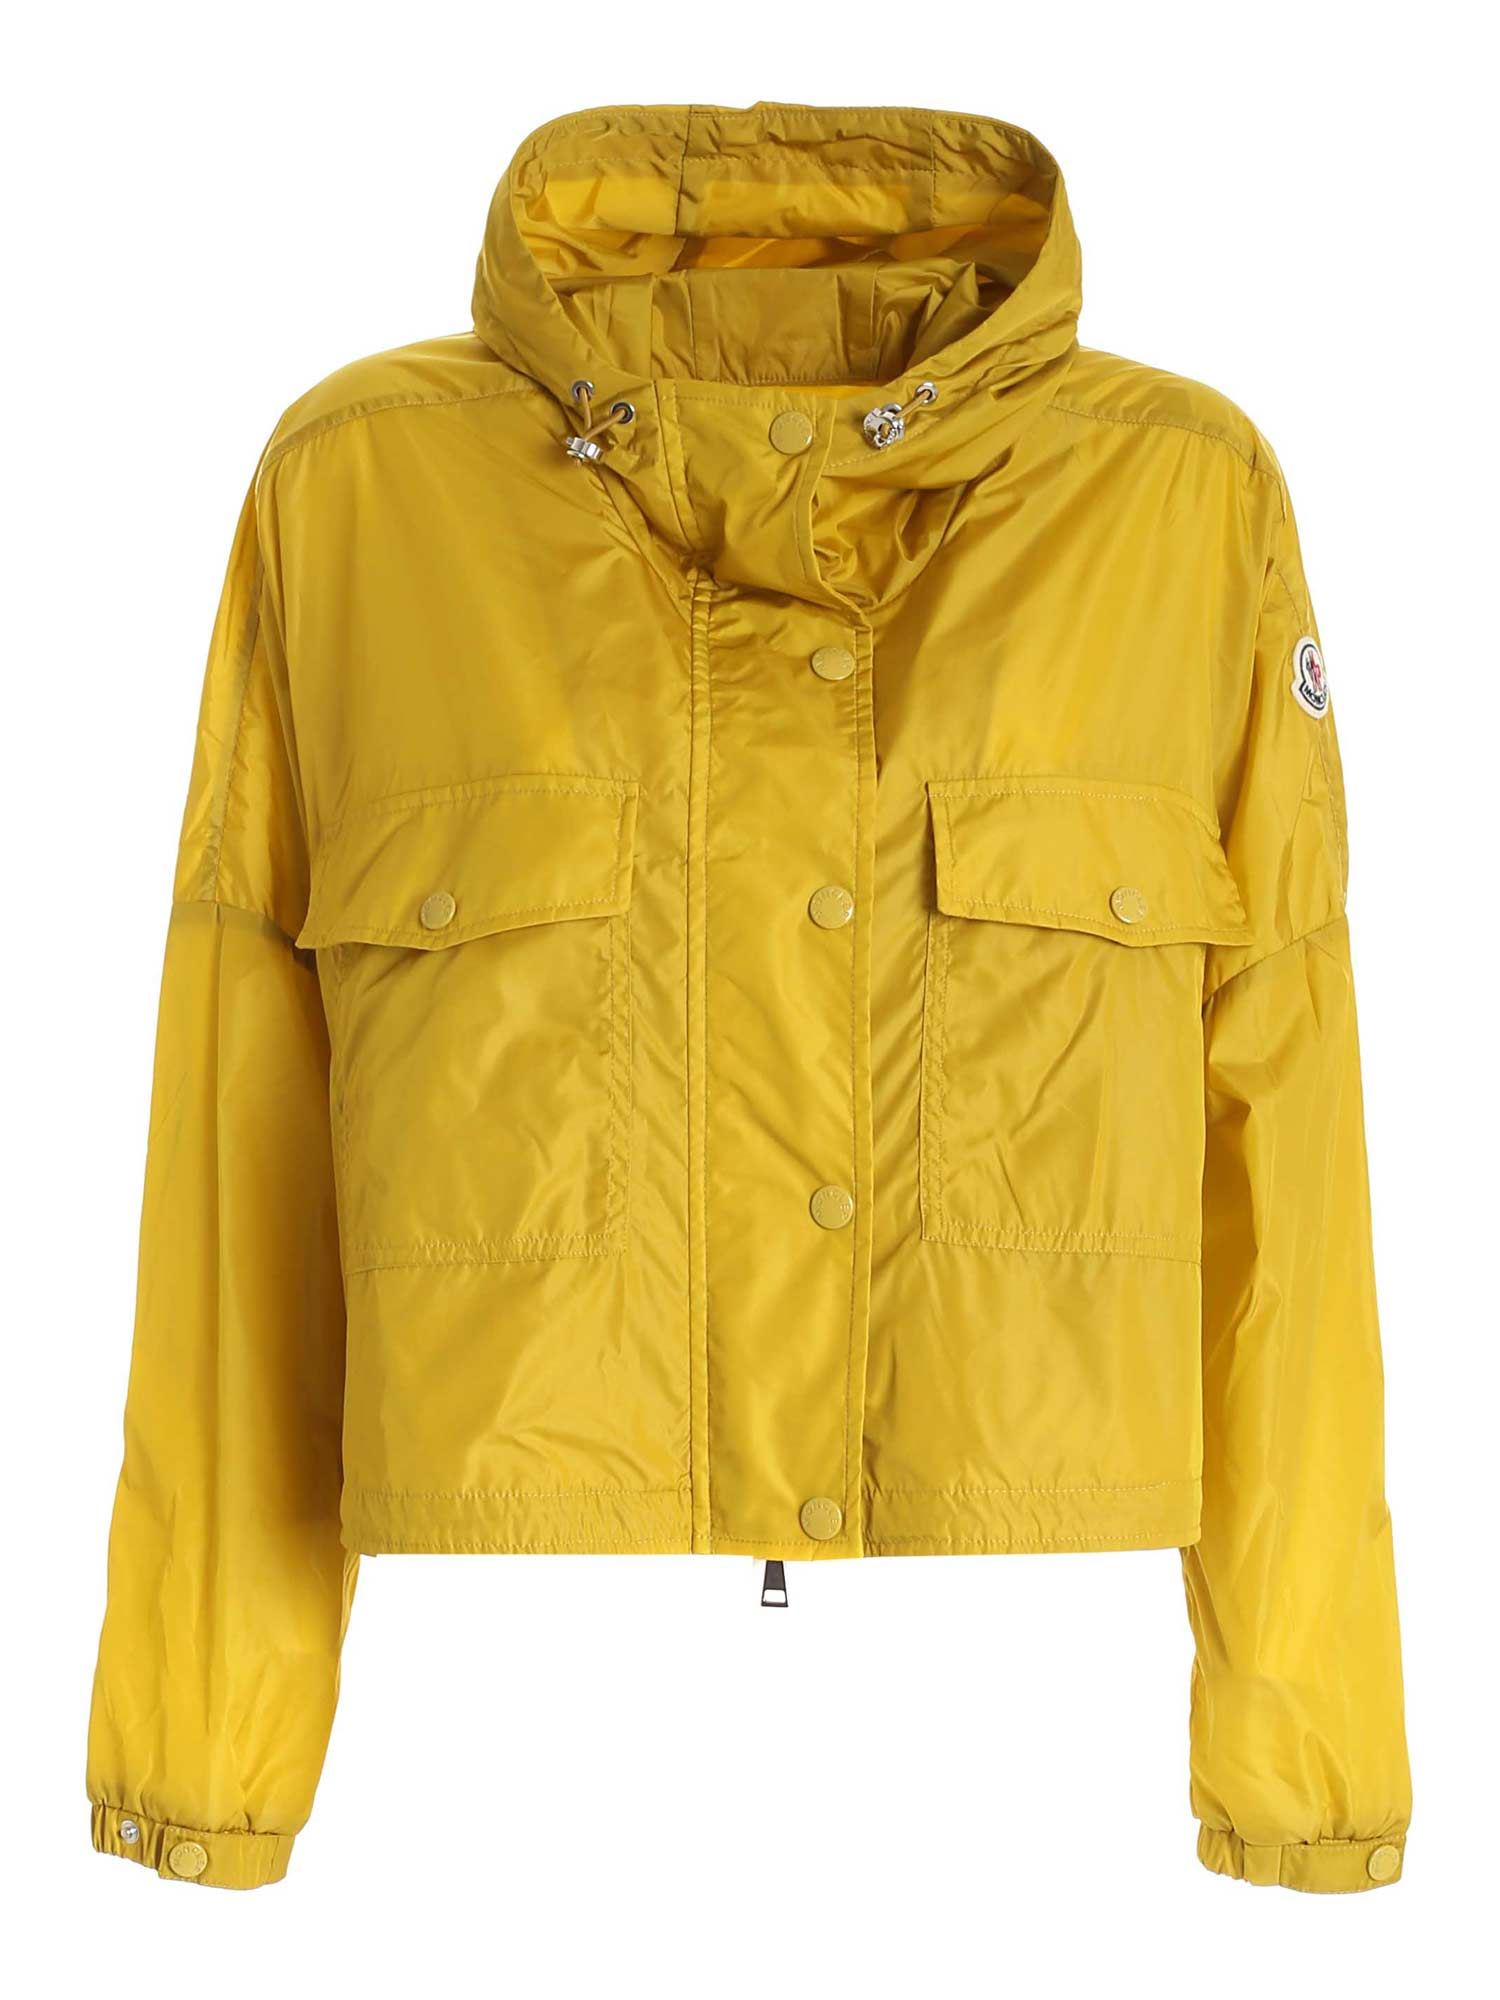 Moncler PRIMAGIEDI JACKET IN MUSTARD COLOR